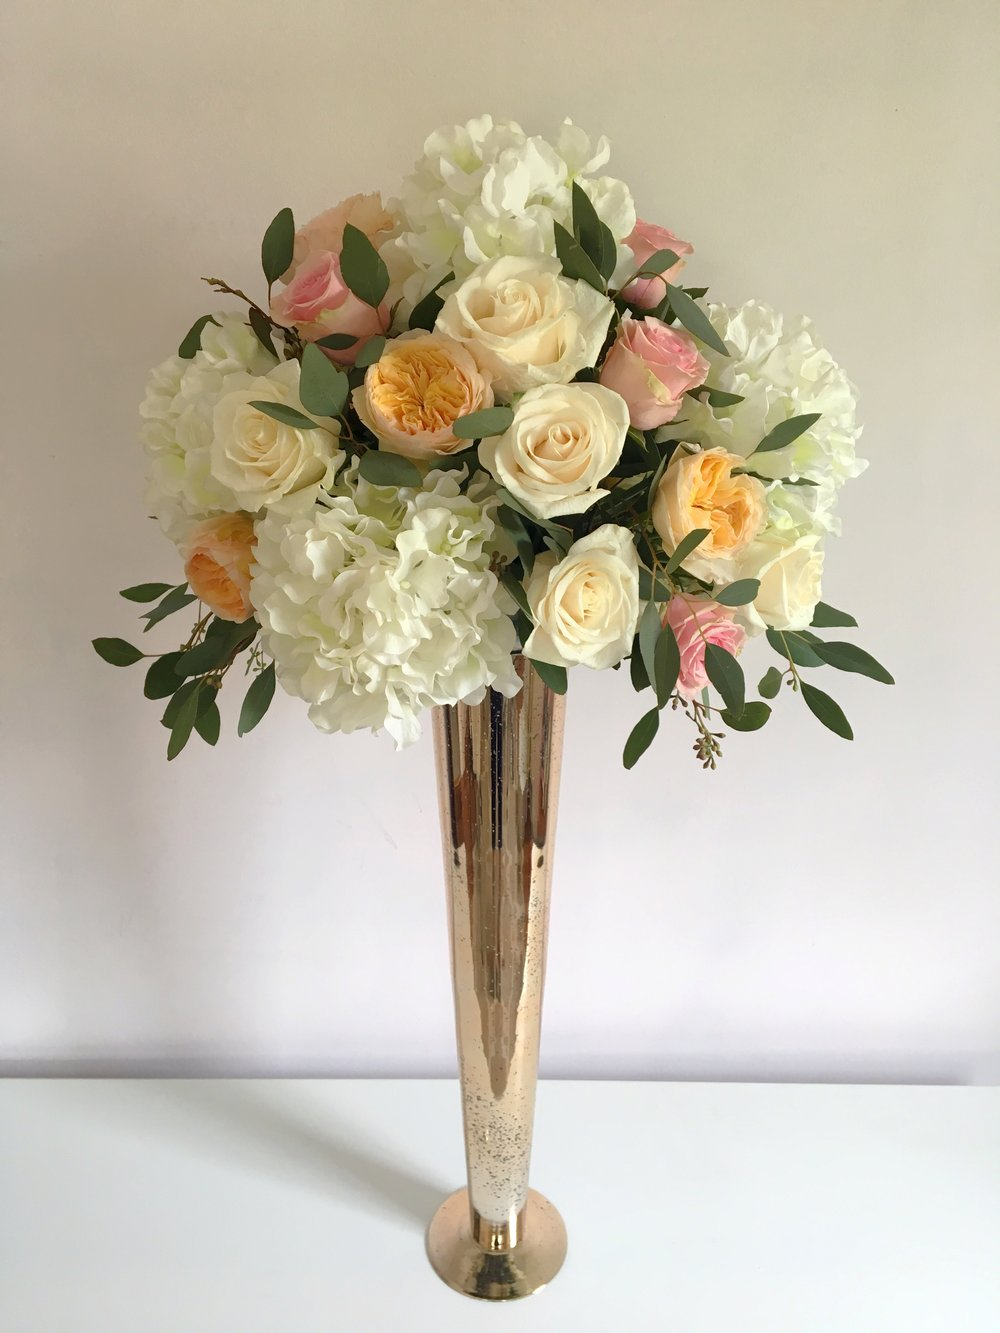 Evelisa Floral & Design: tall vase